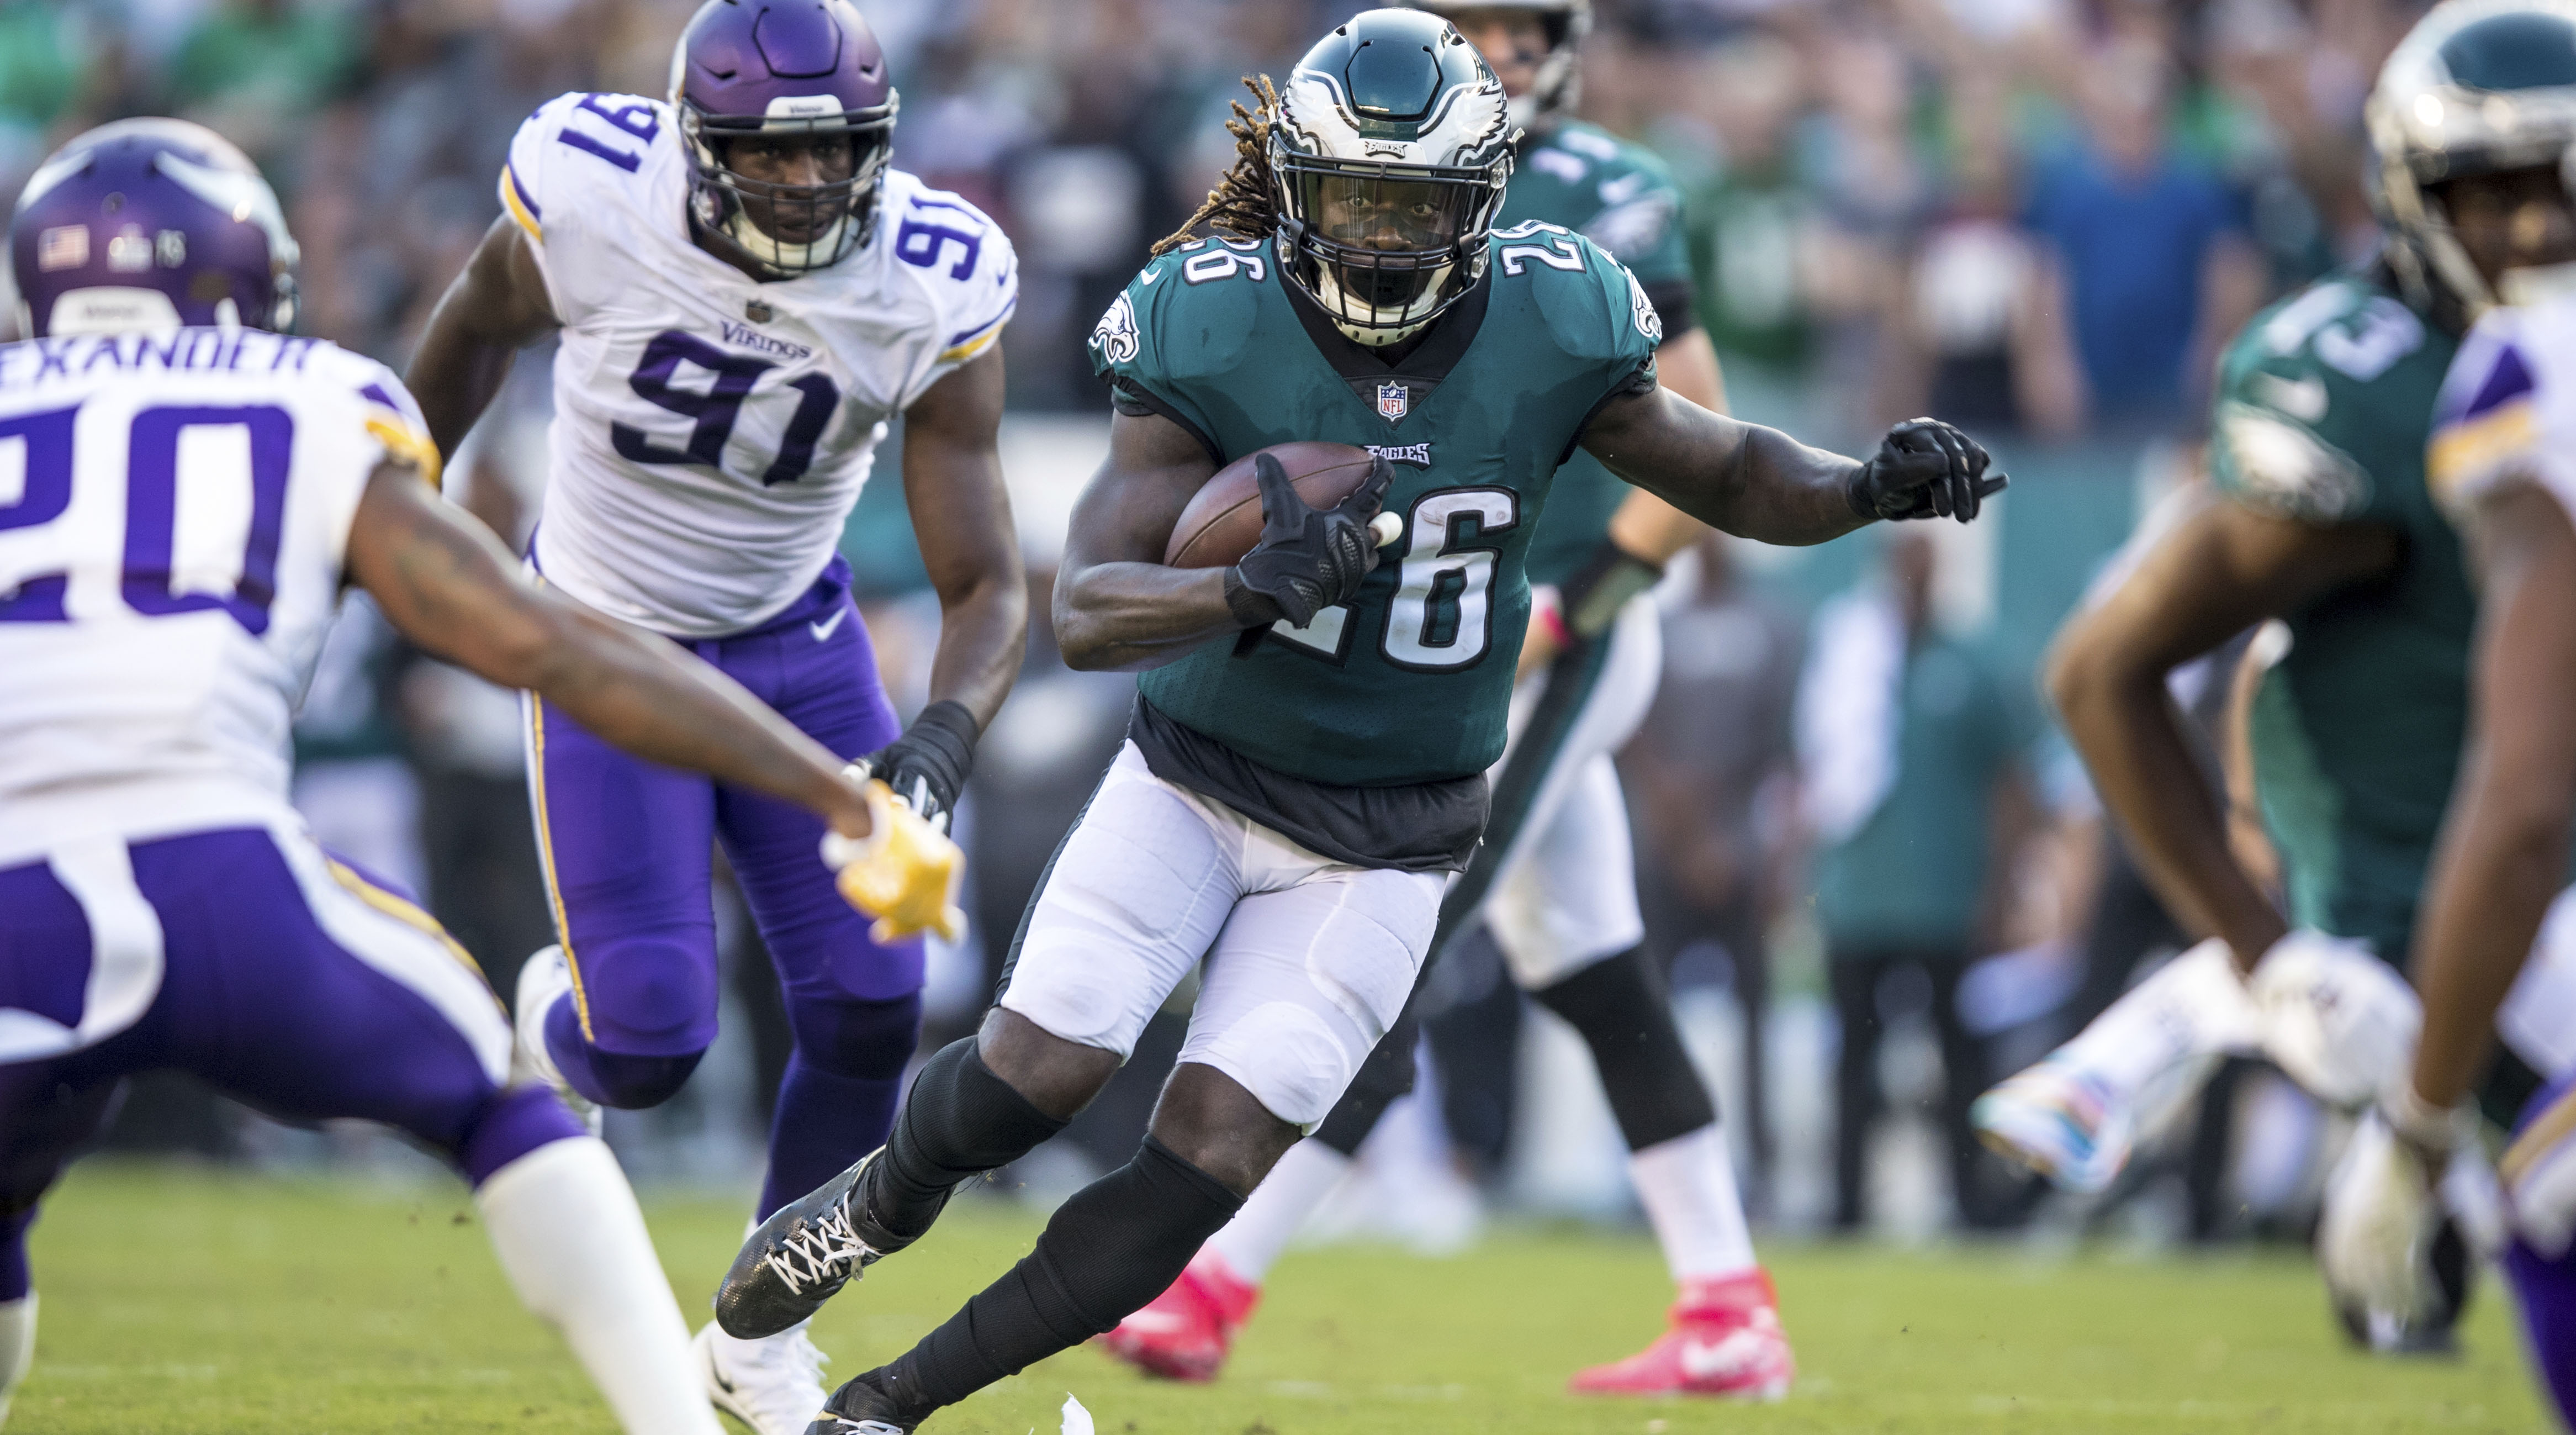 Eagles RB Jay Ajayi Took Out Loss-of-Value Insurance Policy In Case of Injury